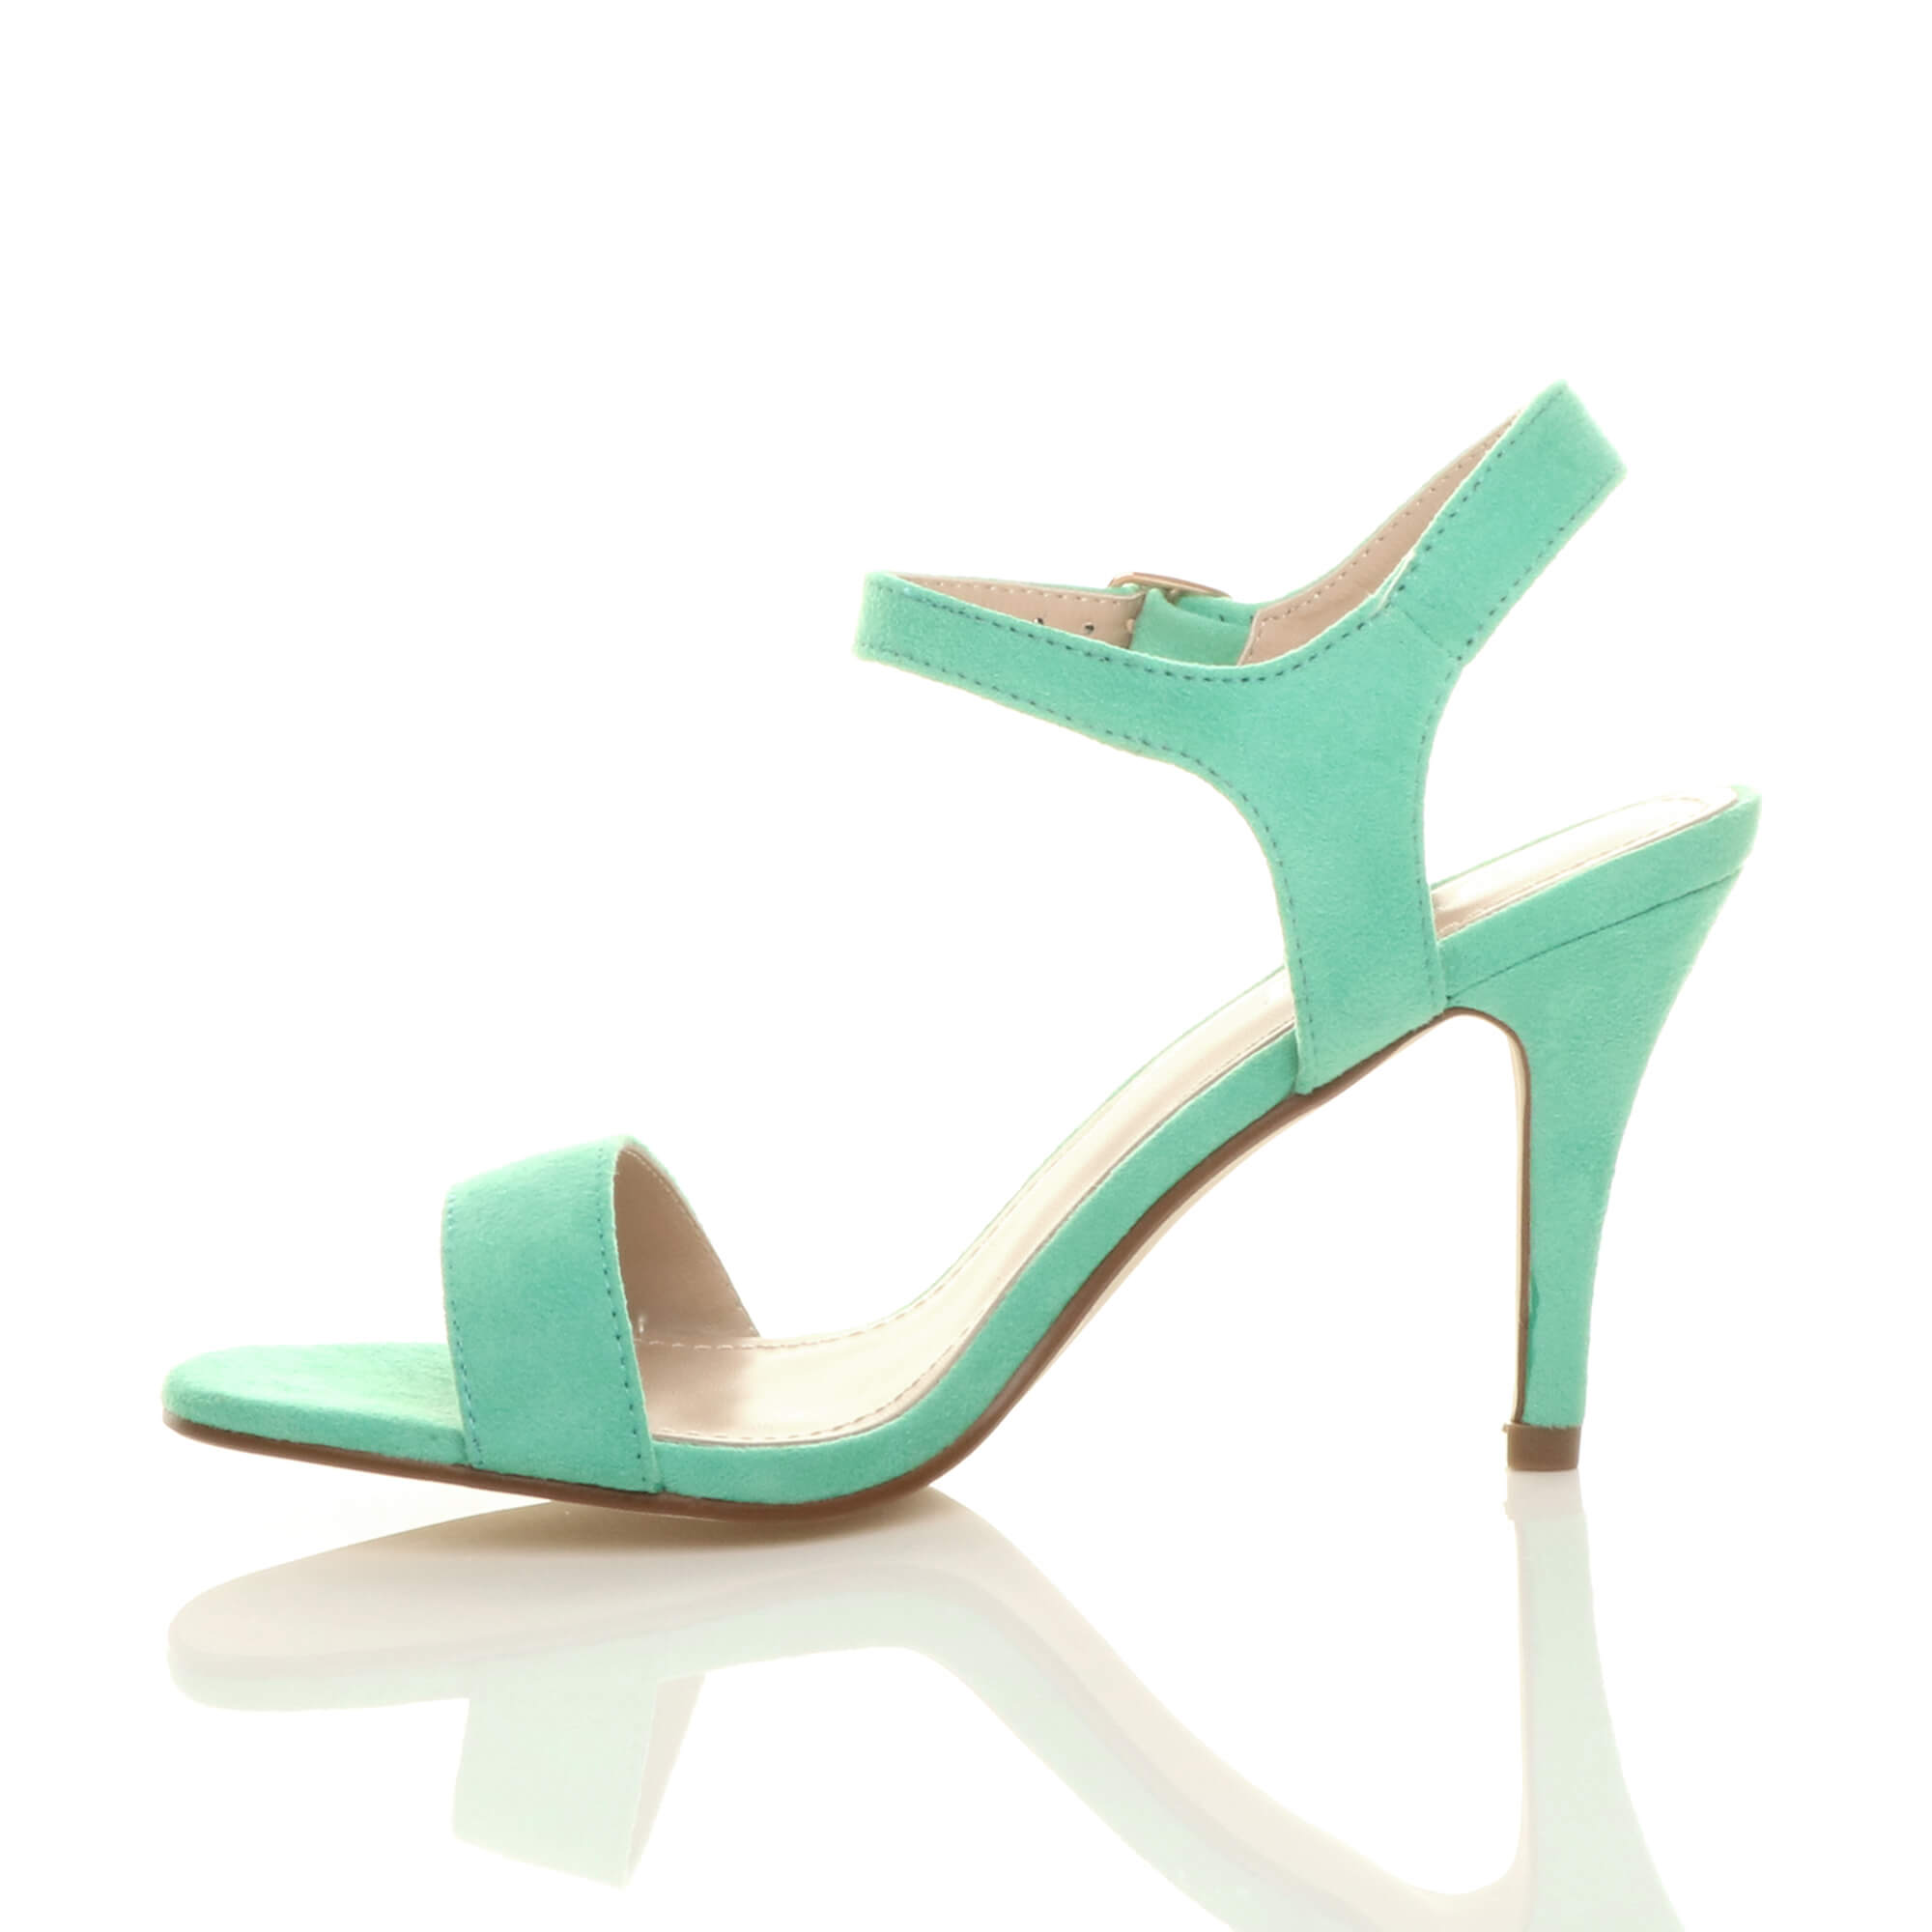 WOMENS-LADIES-HIGH-HEEL-BUCKLE-STRAPPY-BASIC-BARELY-THERE-SANDALS-SHOES-SIZE thumbnail 60